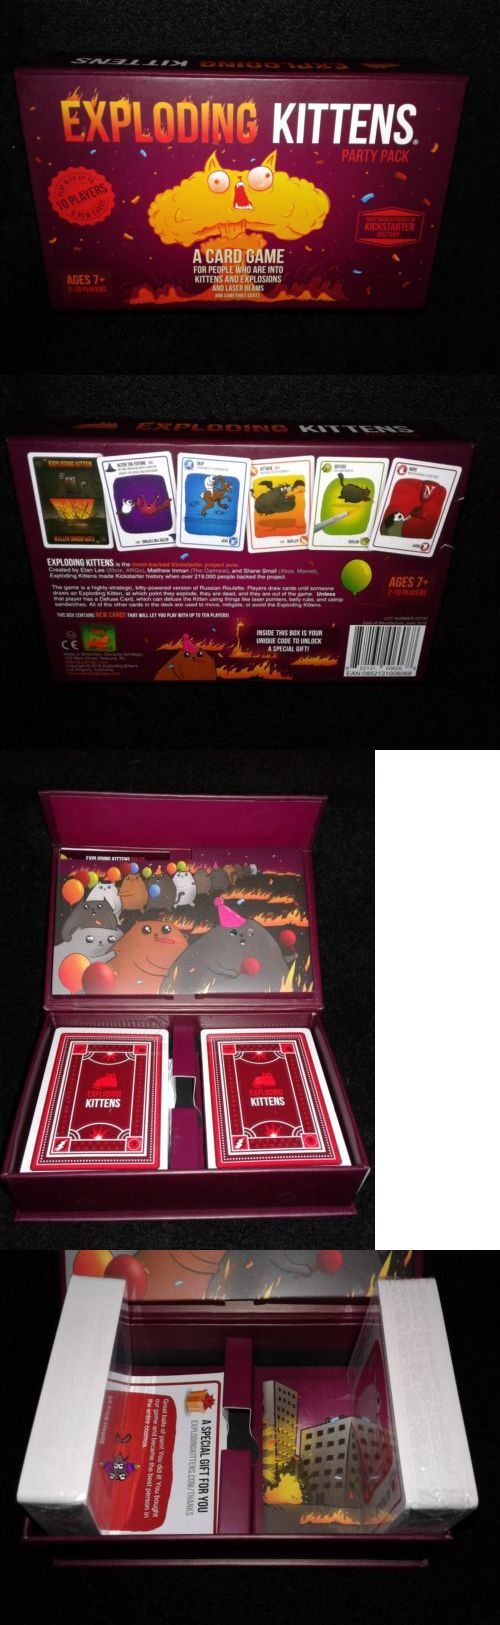 Games 233 Exploding Kittens Party Pack Game Card Game Buy It